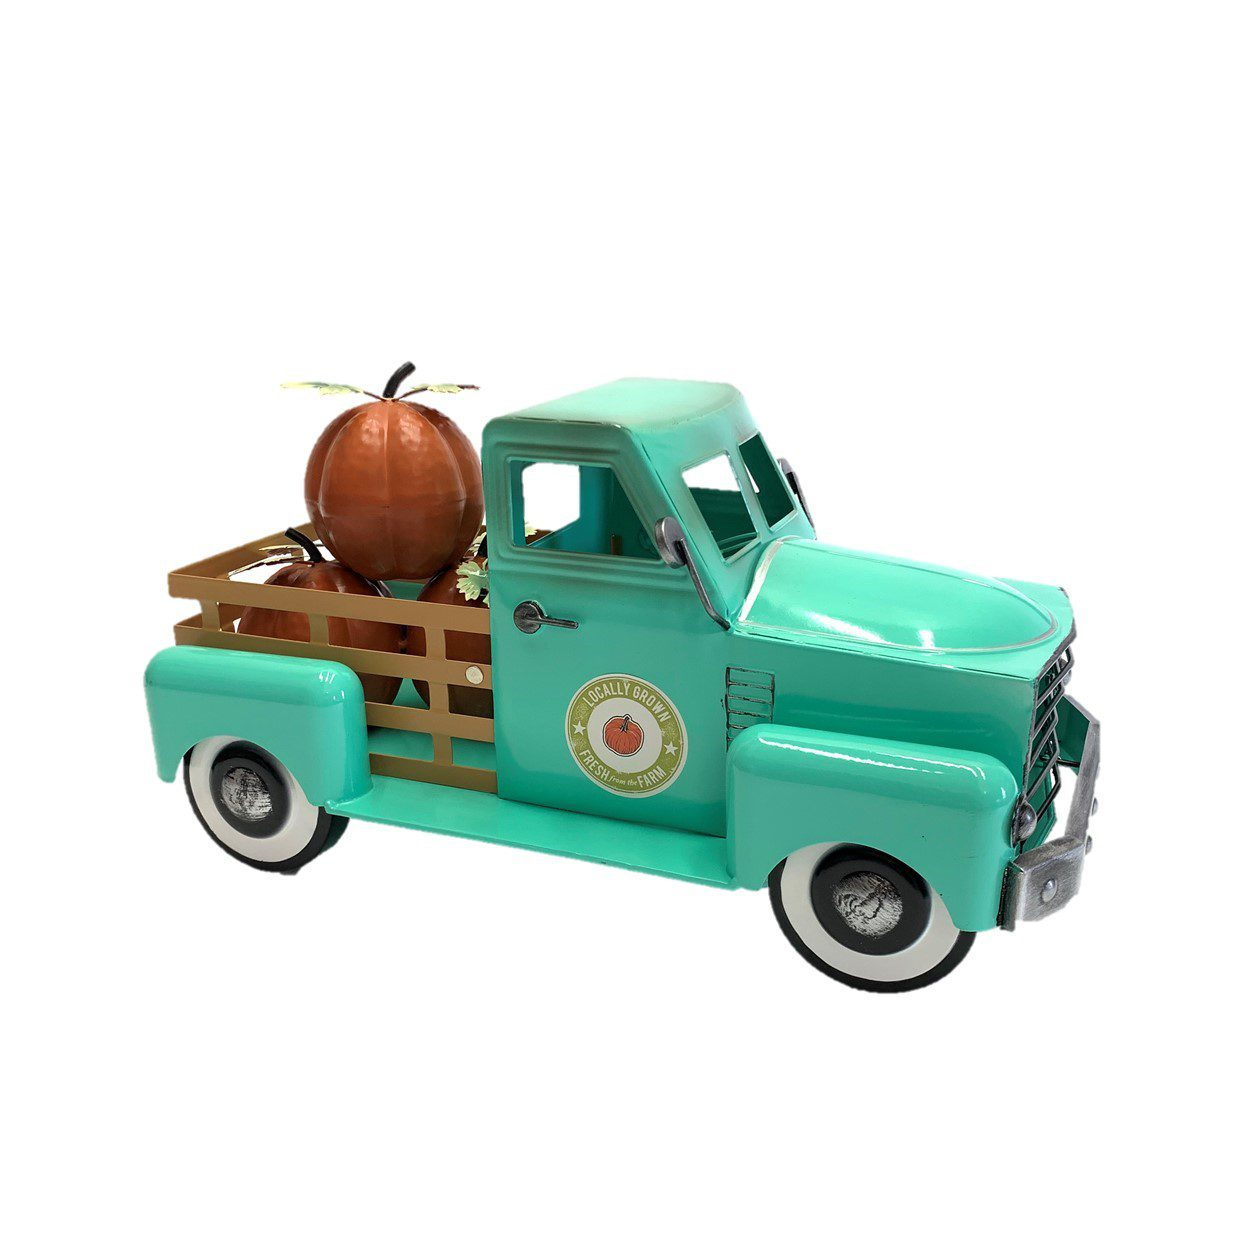 Teal Country Pickup Truck with Pumpkins